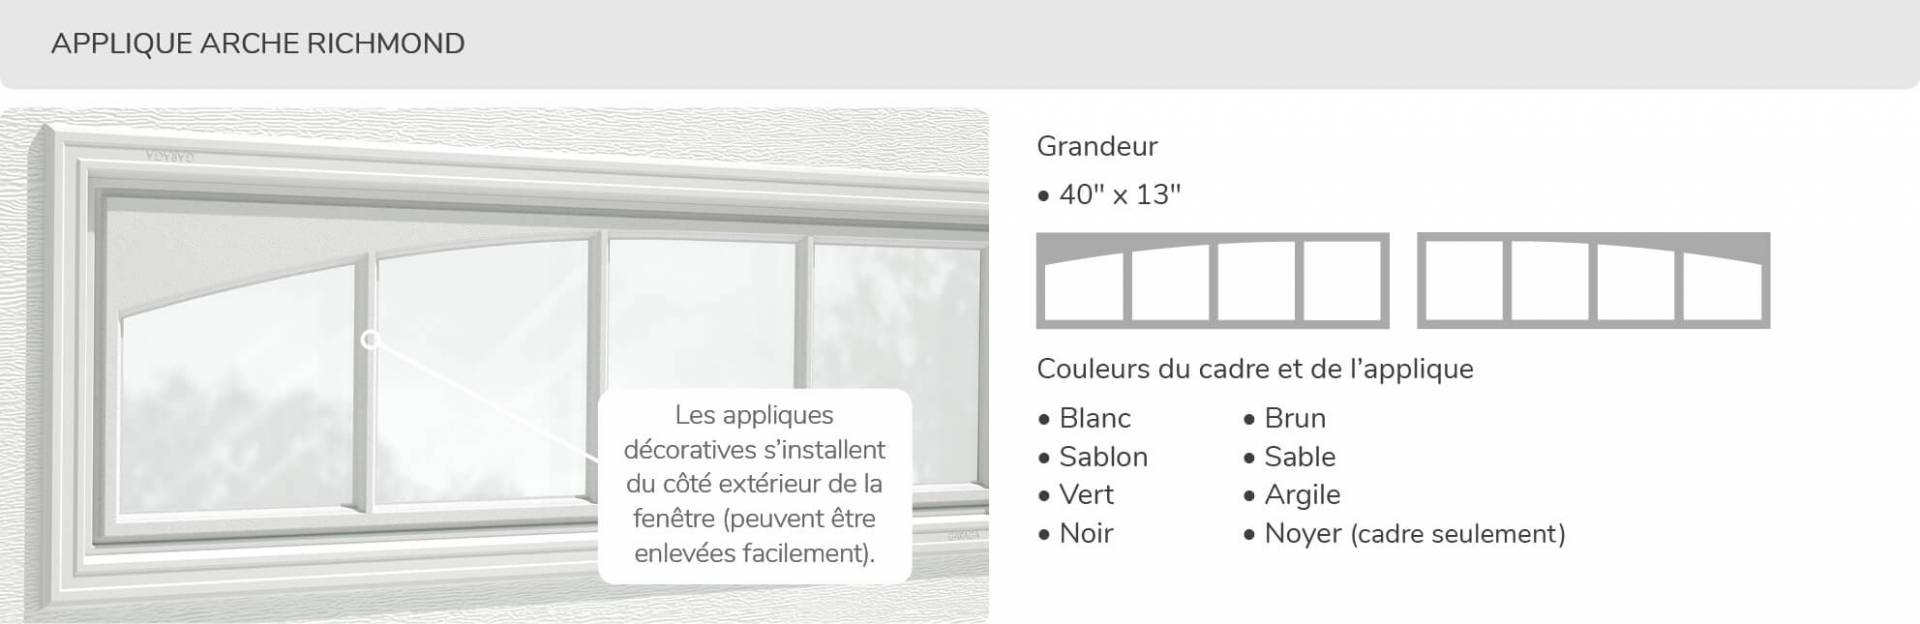 Applique Arche Richmond, 40' x 13', disponible pour la porte R-16